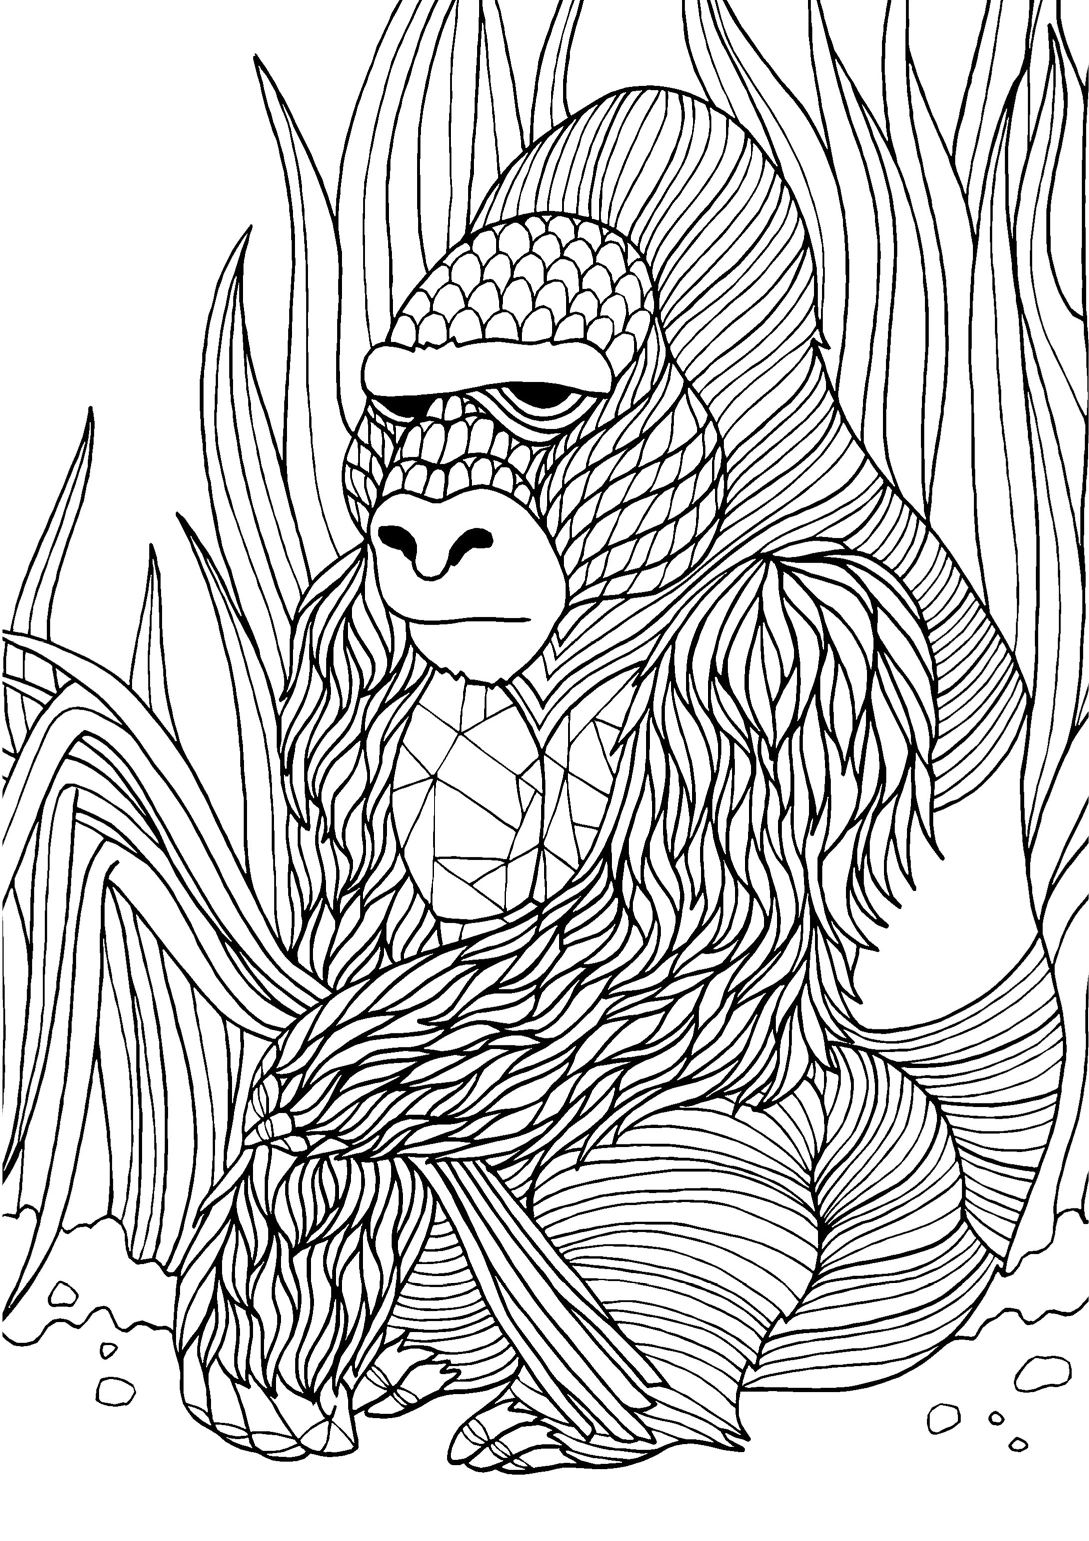 Gorilla adult colouring page : Colouring In Sheets - Art & Craft ...